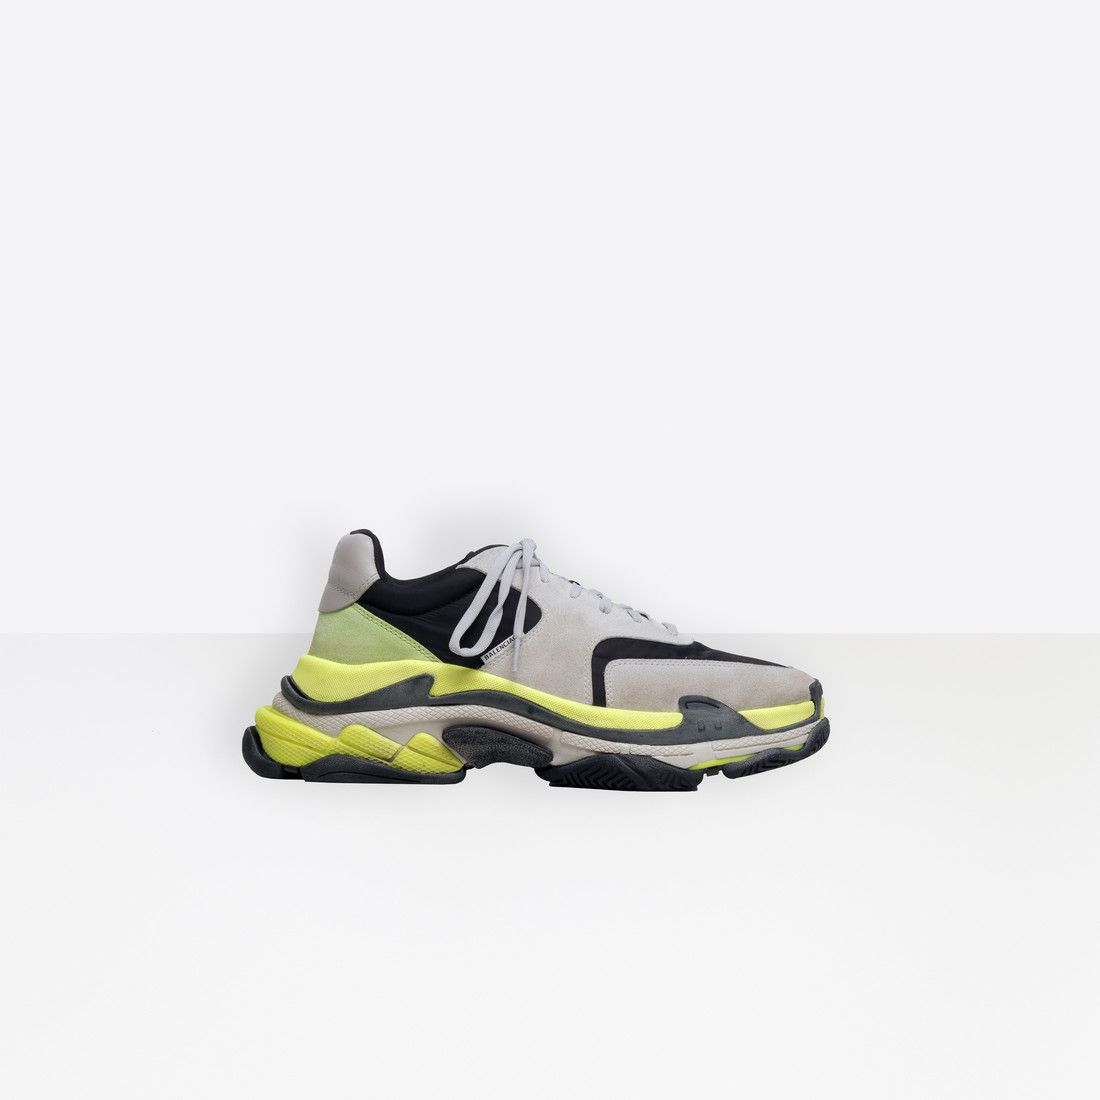 end mens trainers